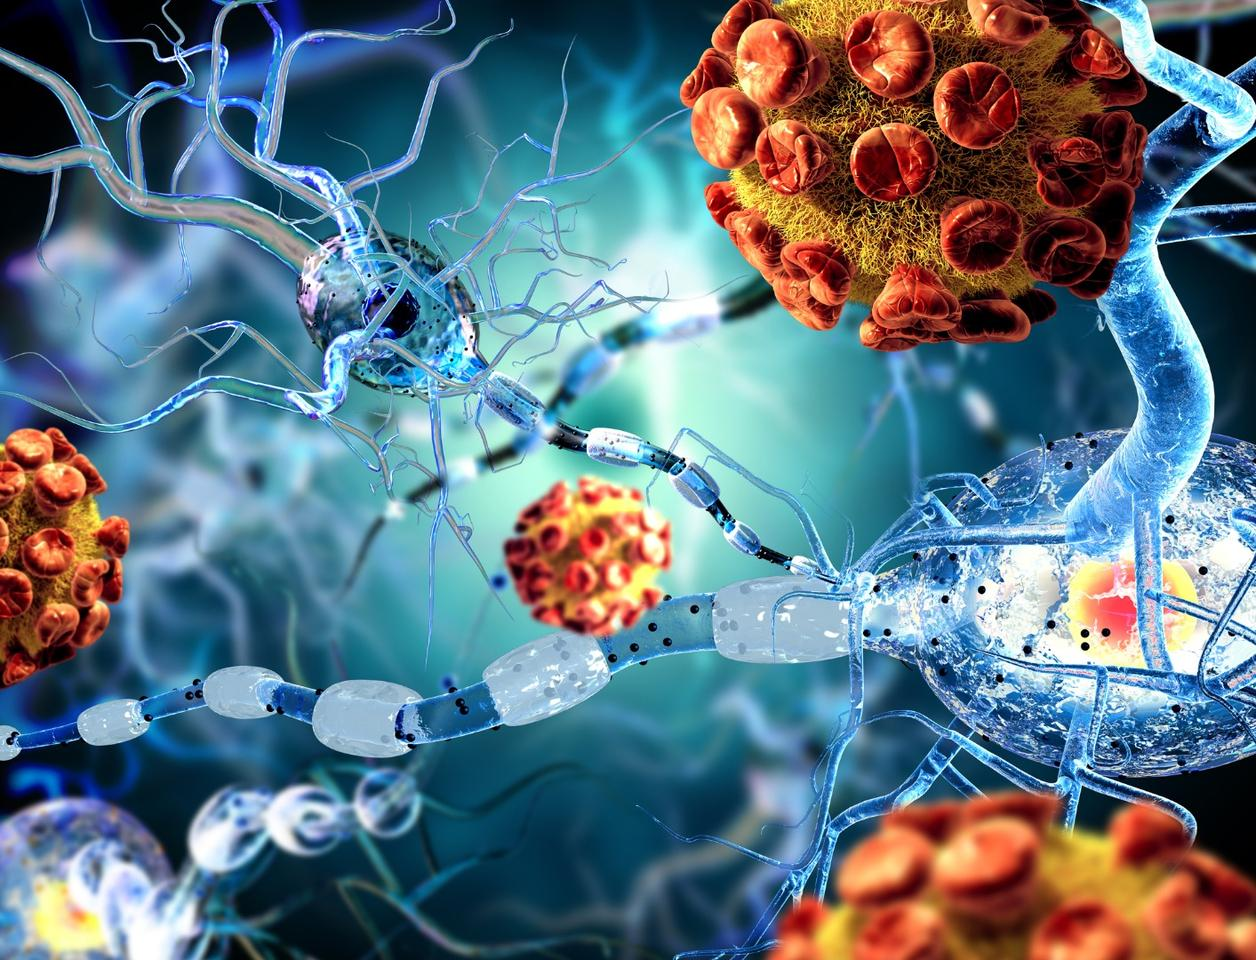 An immune cell originating in the intestine has been found to reduce brain inflammation associated with multiple sclerosis